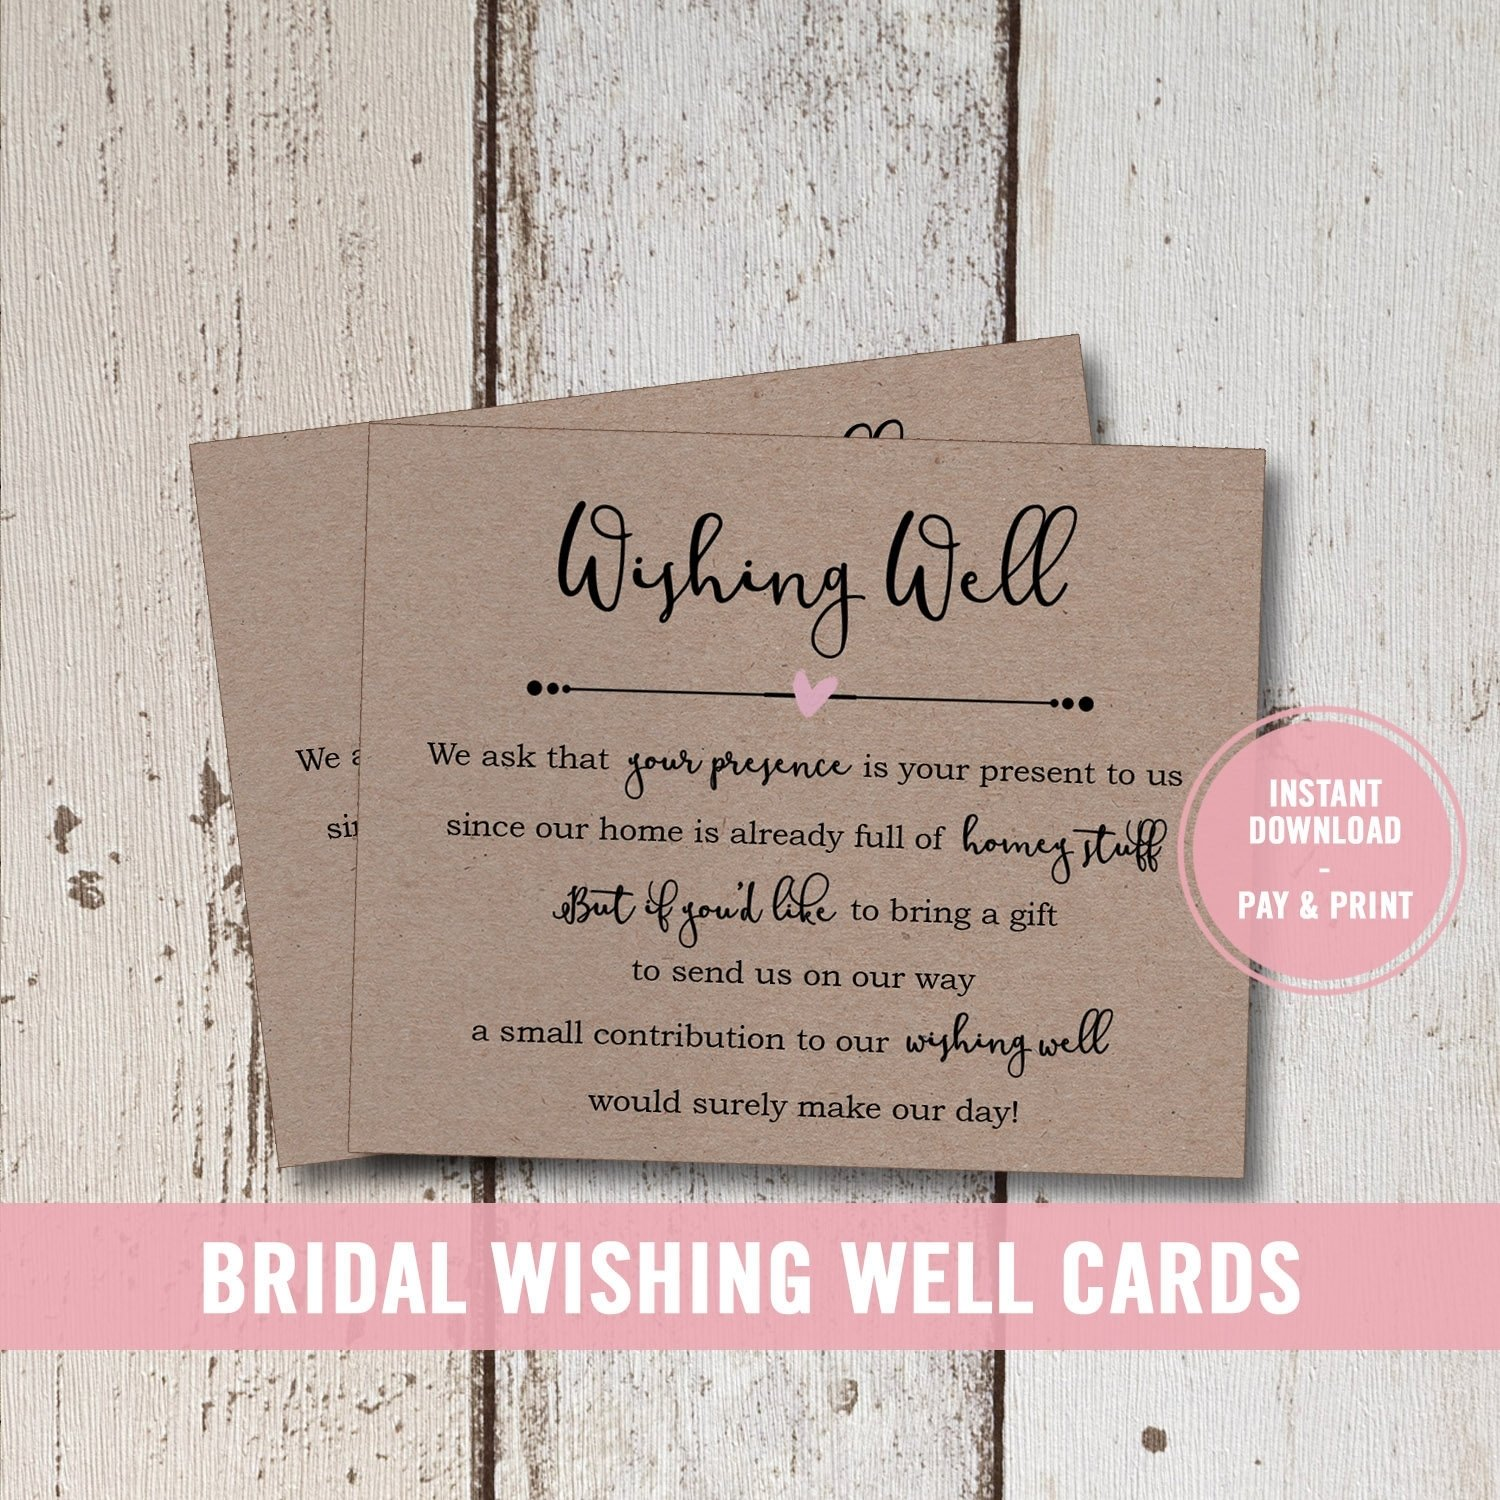 10 Ideal Bridal Shower Wishing Well Ideas wedding wishing well card printable bridal shower wishing well 1 2020